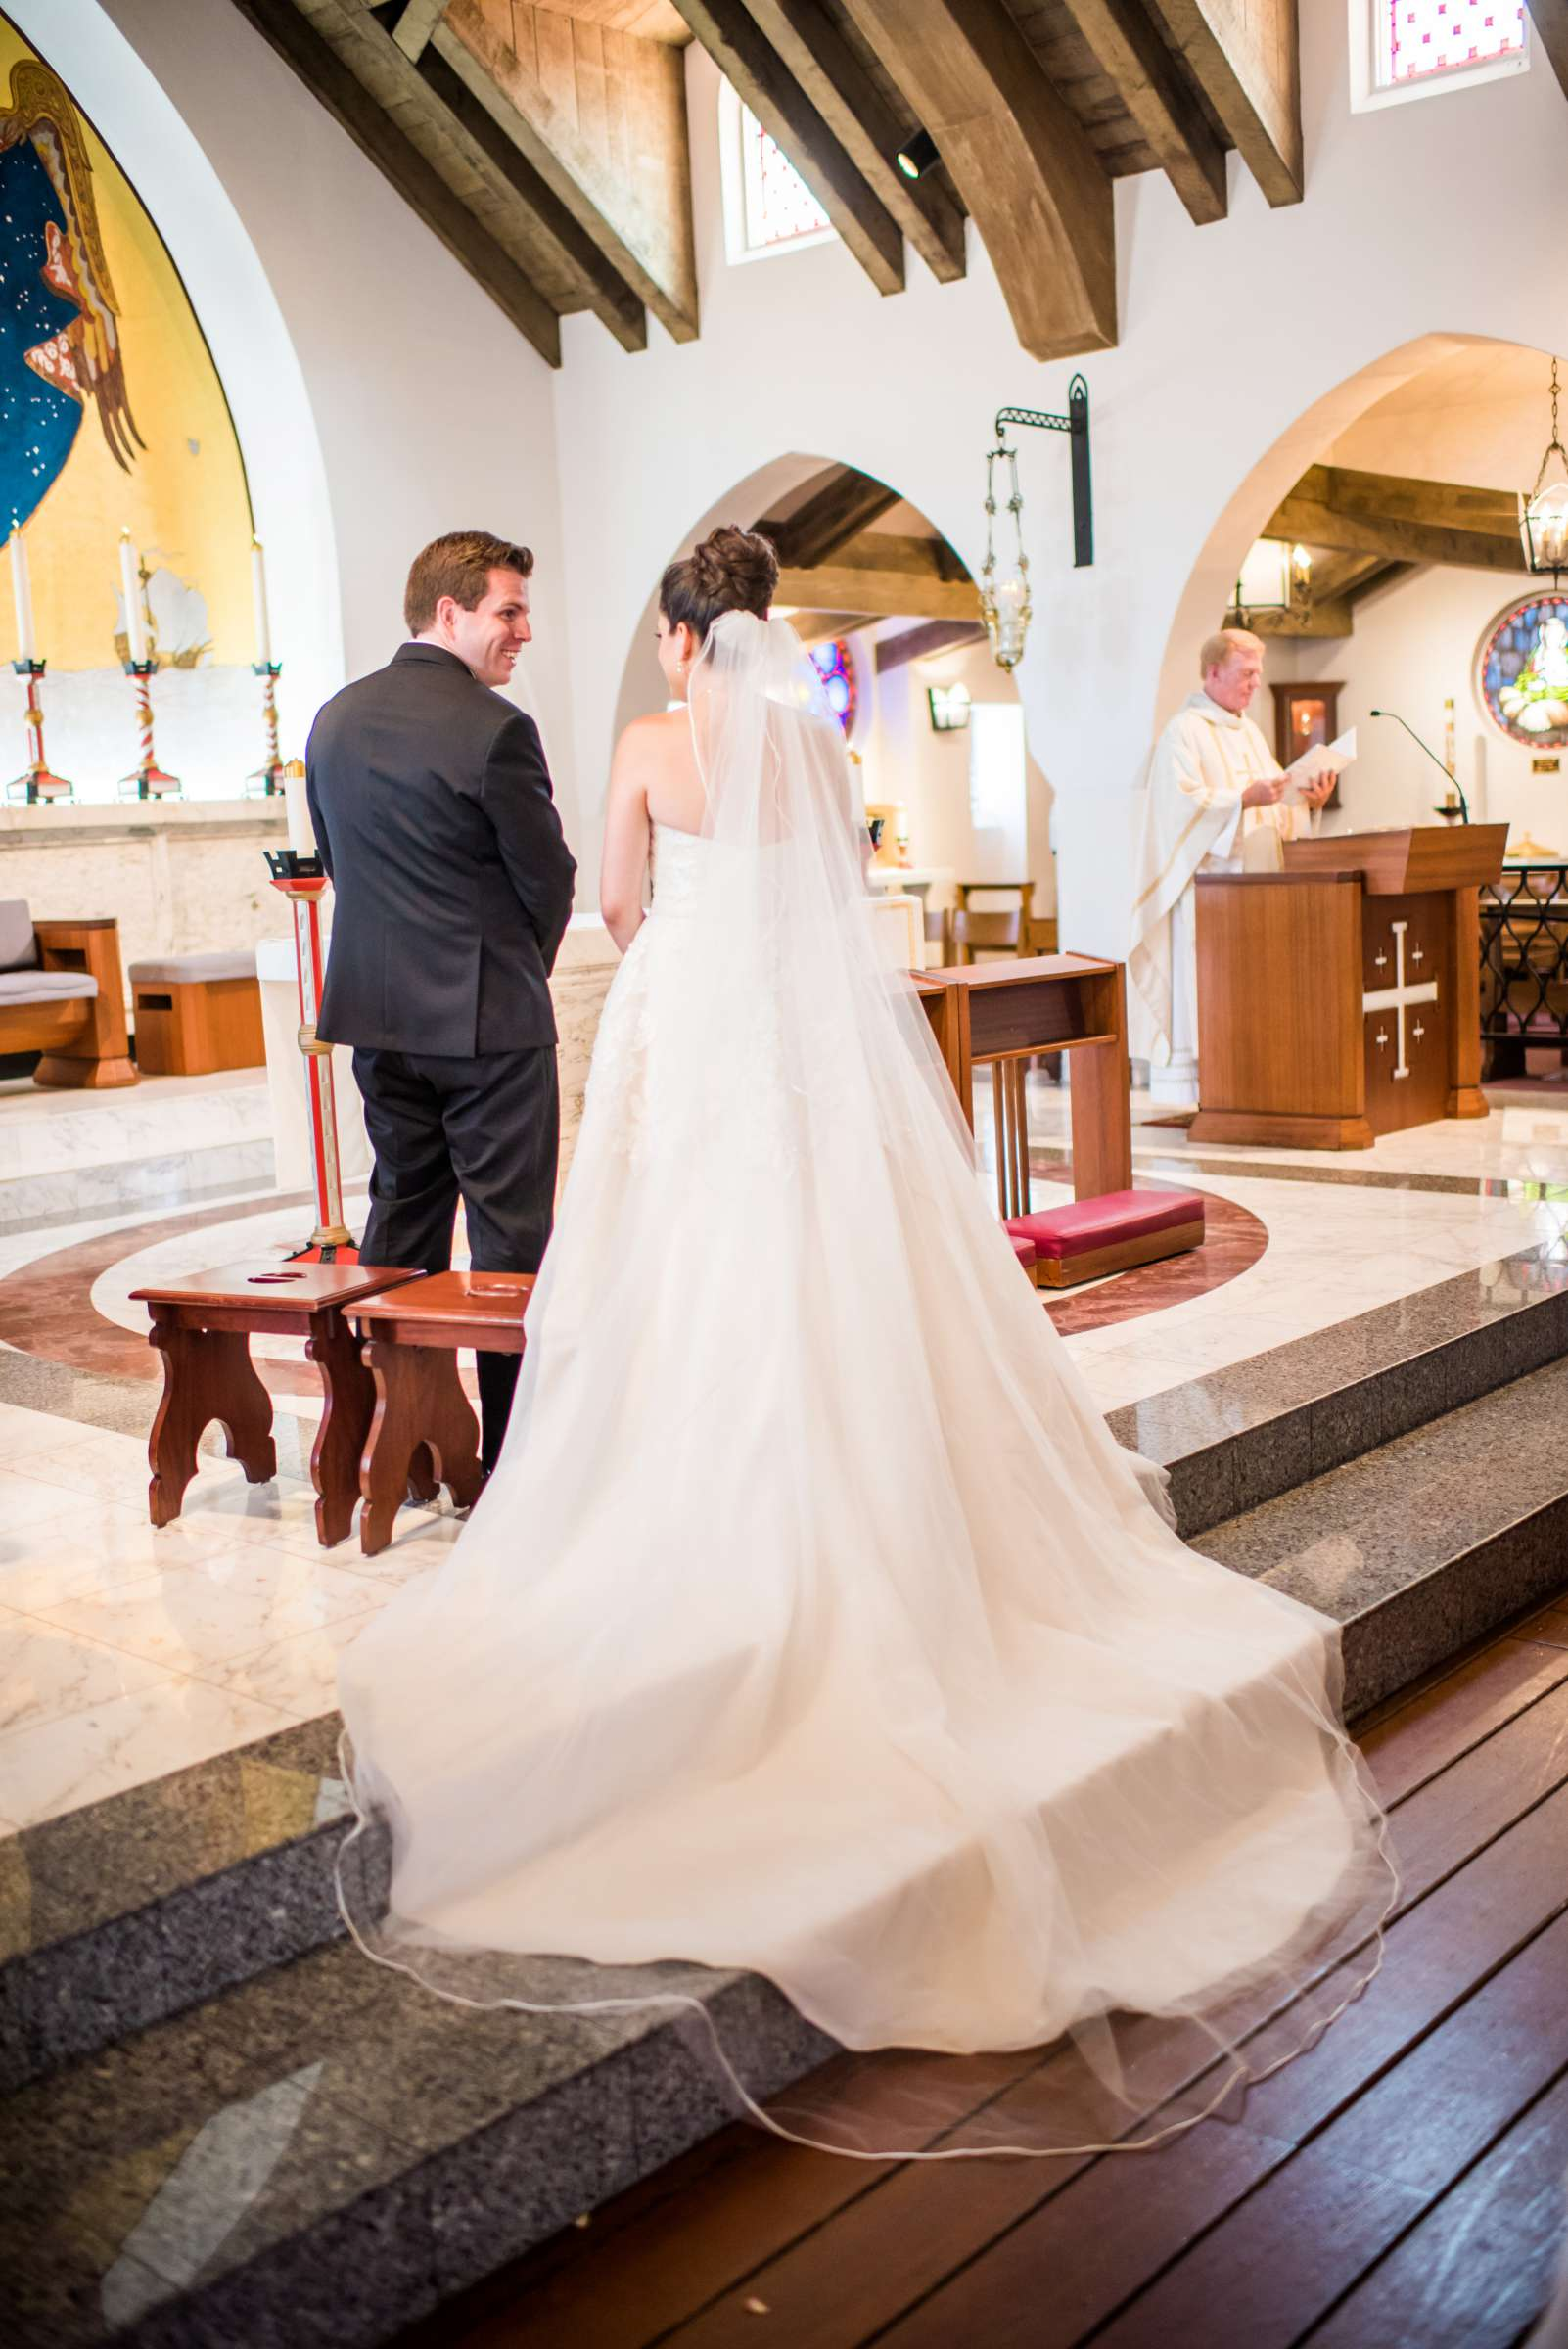 Bahia Hotel Wedding coordinated by I Do Weddings, Meredith and Jack Wedding Photo #32 by True Photography